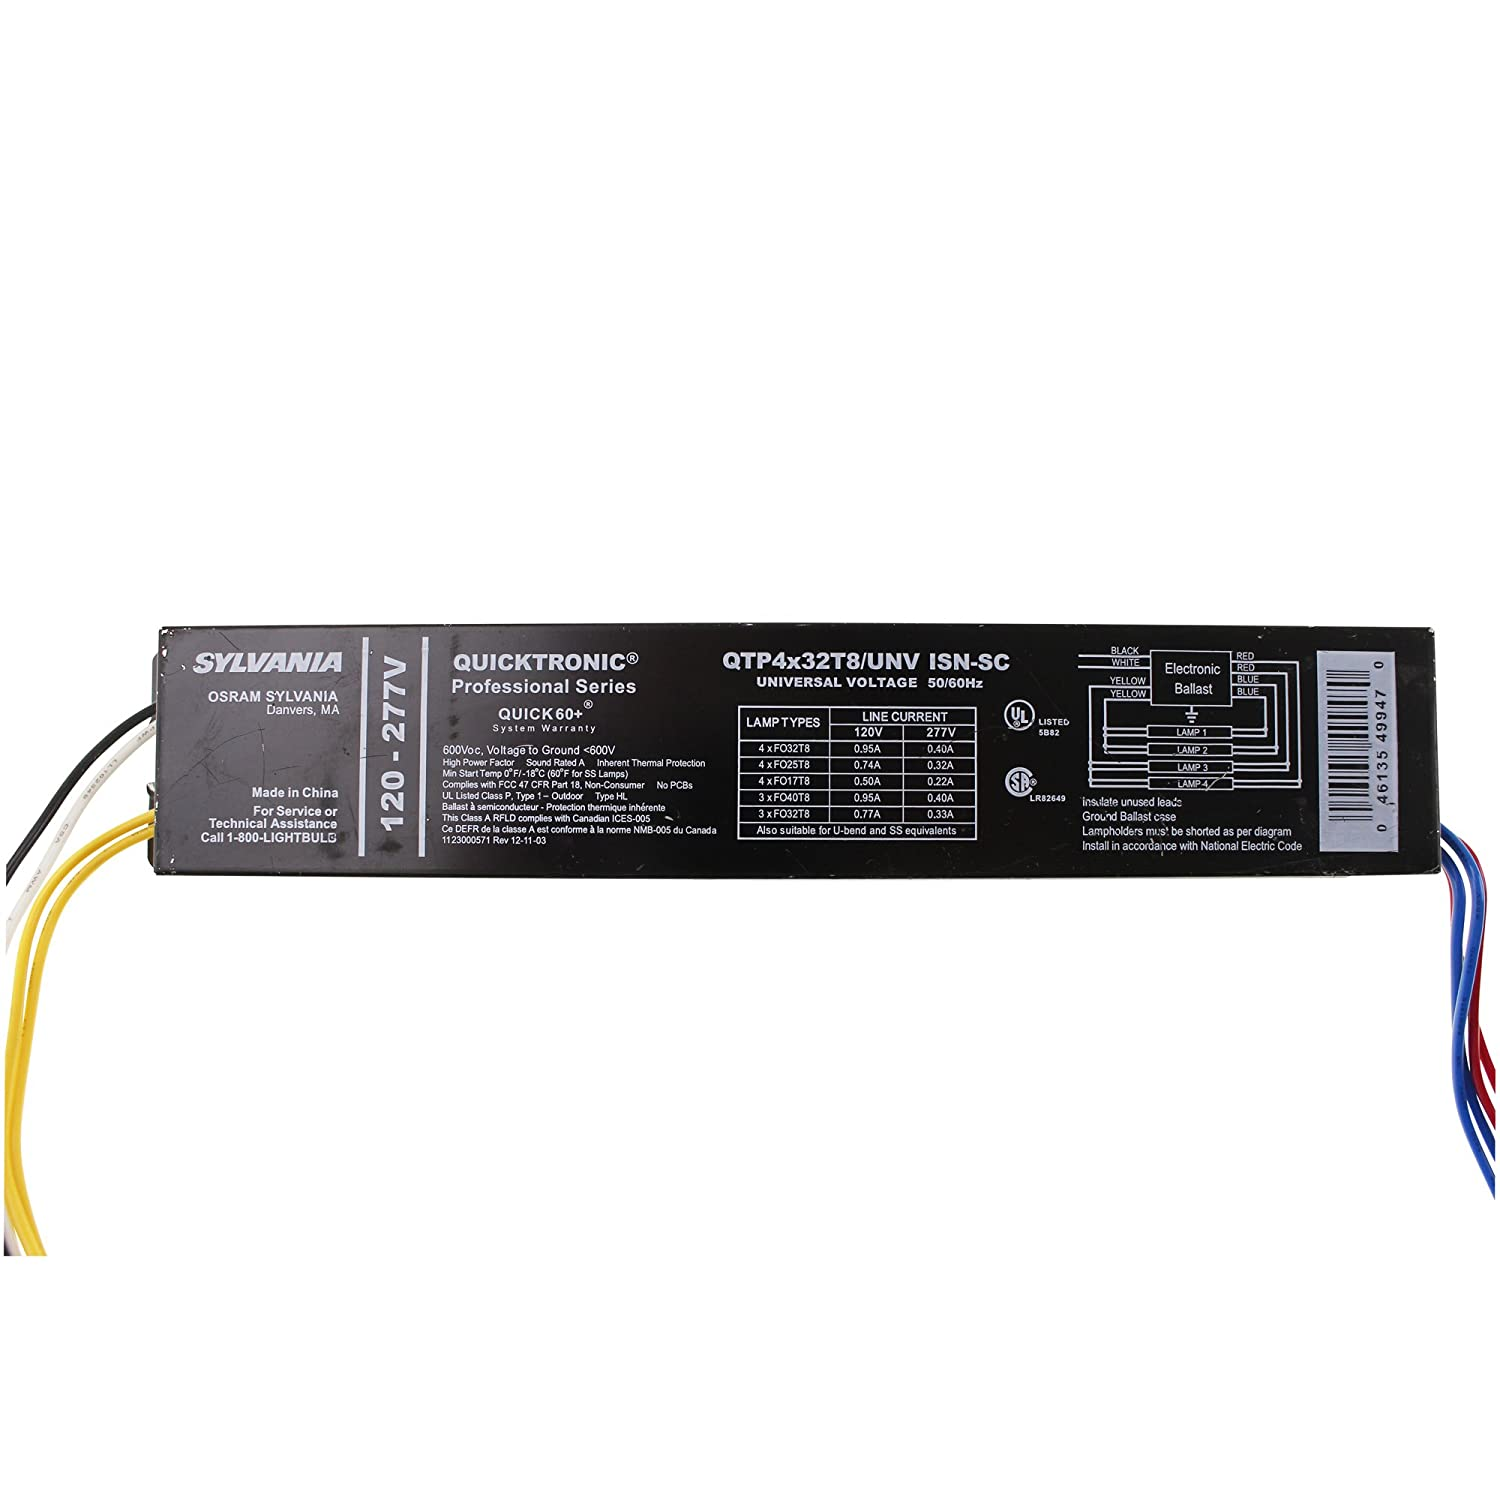 OSRAM SYLVANIA QTP4x32T8/UNV-ISN-SC (49947) 4 FLUORESCENT Ballasts -Fluorescent-HID - Electrical Ballasts - Amazon.com